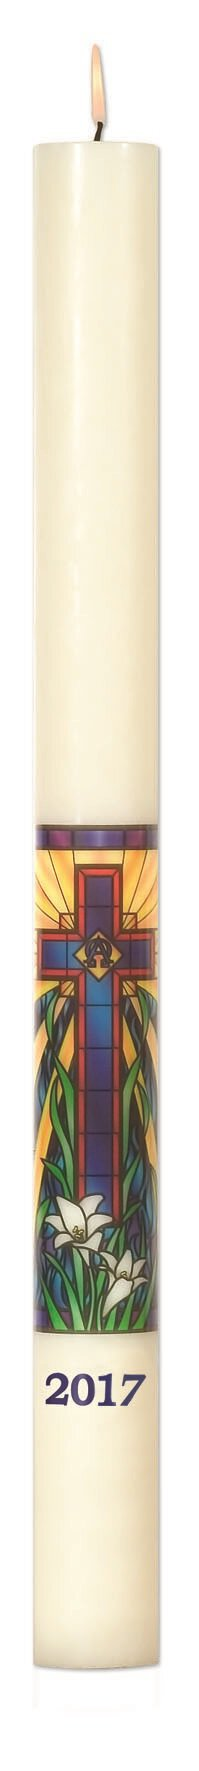 No 10 Radiant Light Mosaic Paschal Candle